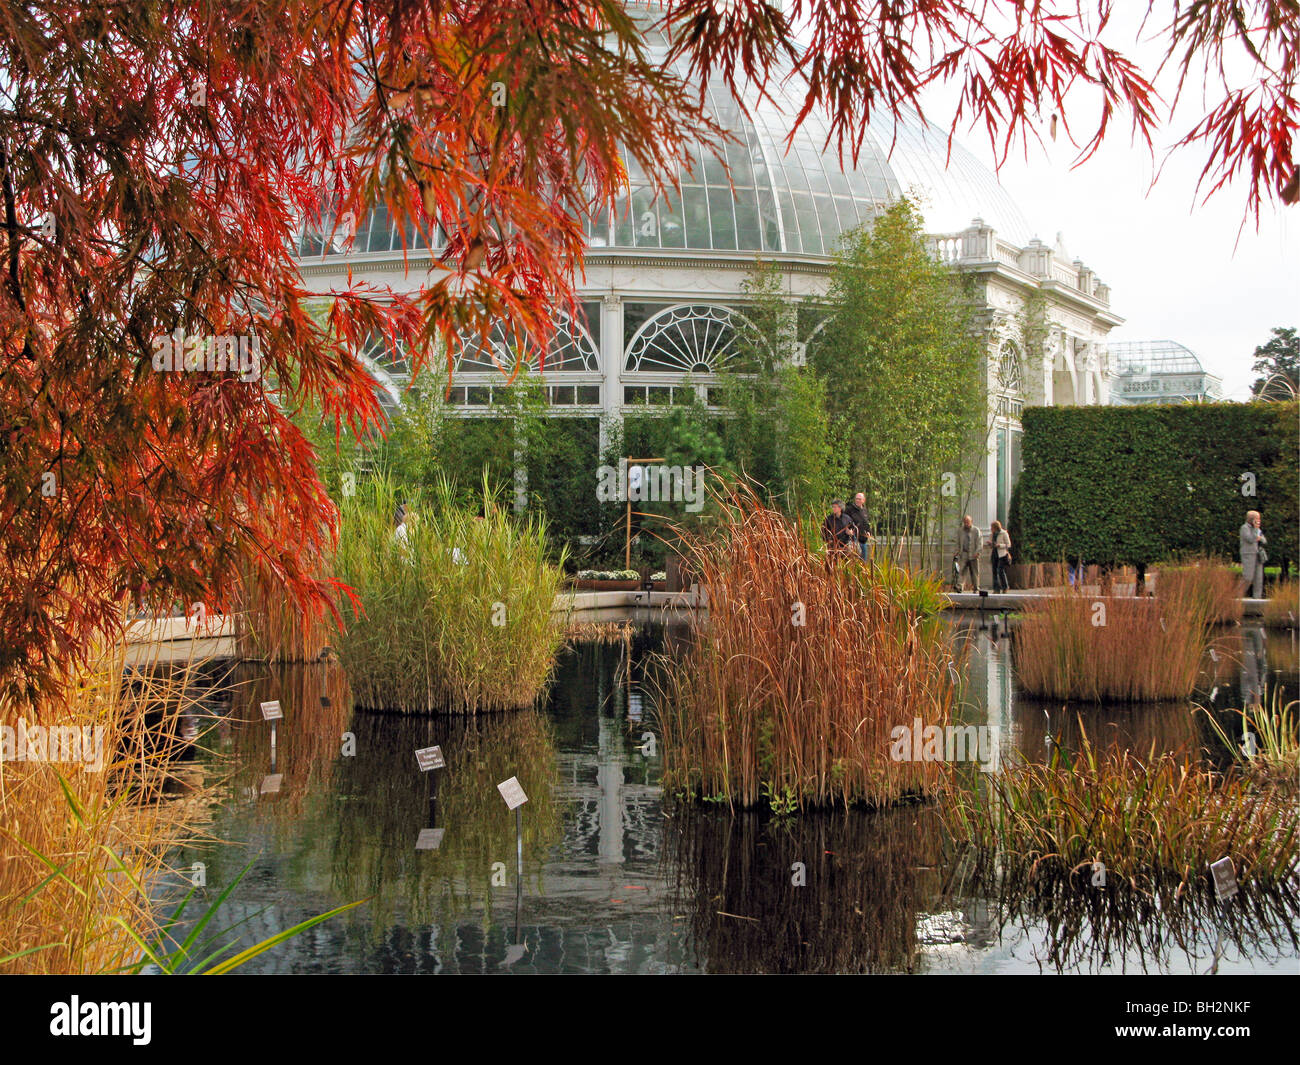 Autumn at the New York Botanical Garden Stock Photo: 27720435 - Alamy